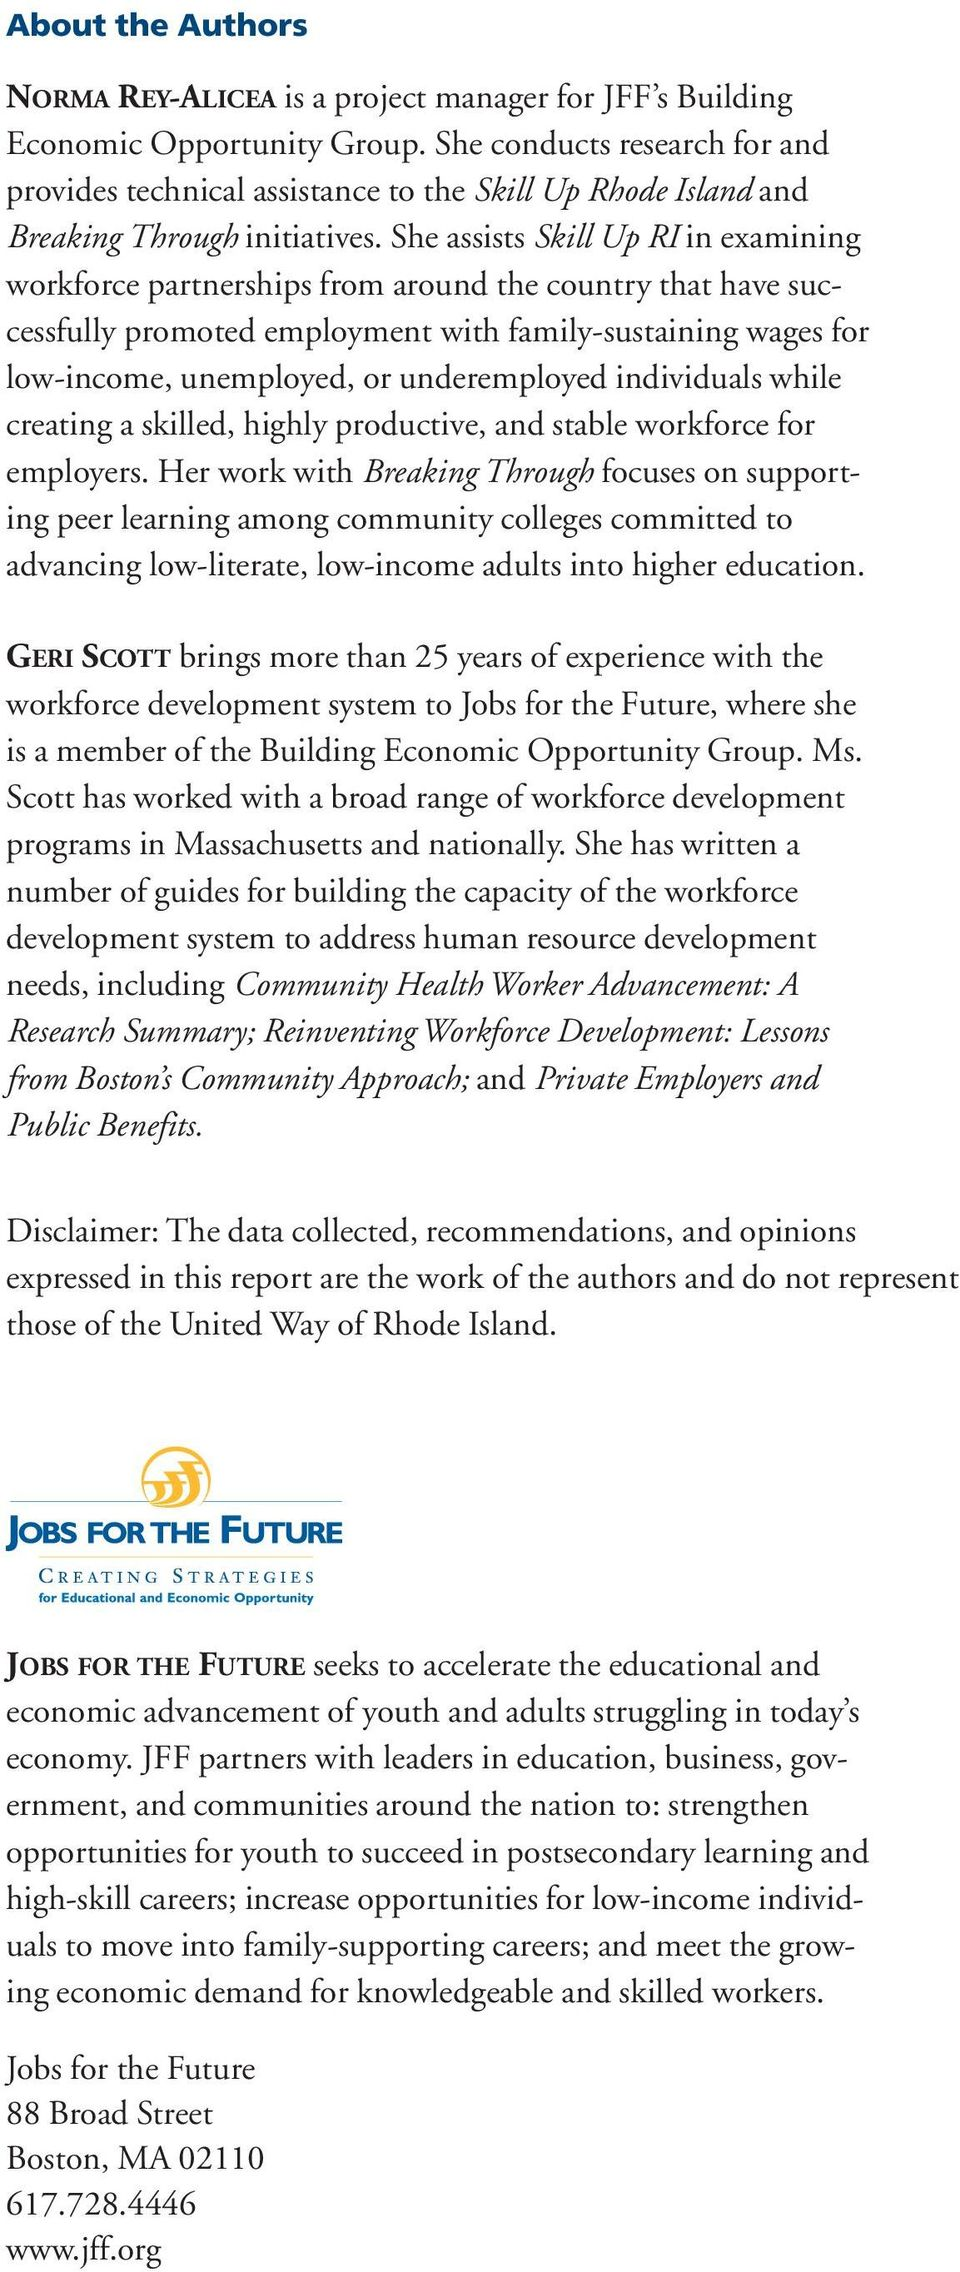 She assists Skill Up RI in examining workforce partnerships from around the country that have successfully promoted employment with family-sustaining wages for low-income, unemployed, or